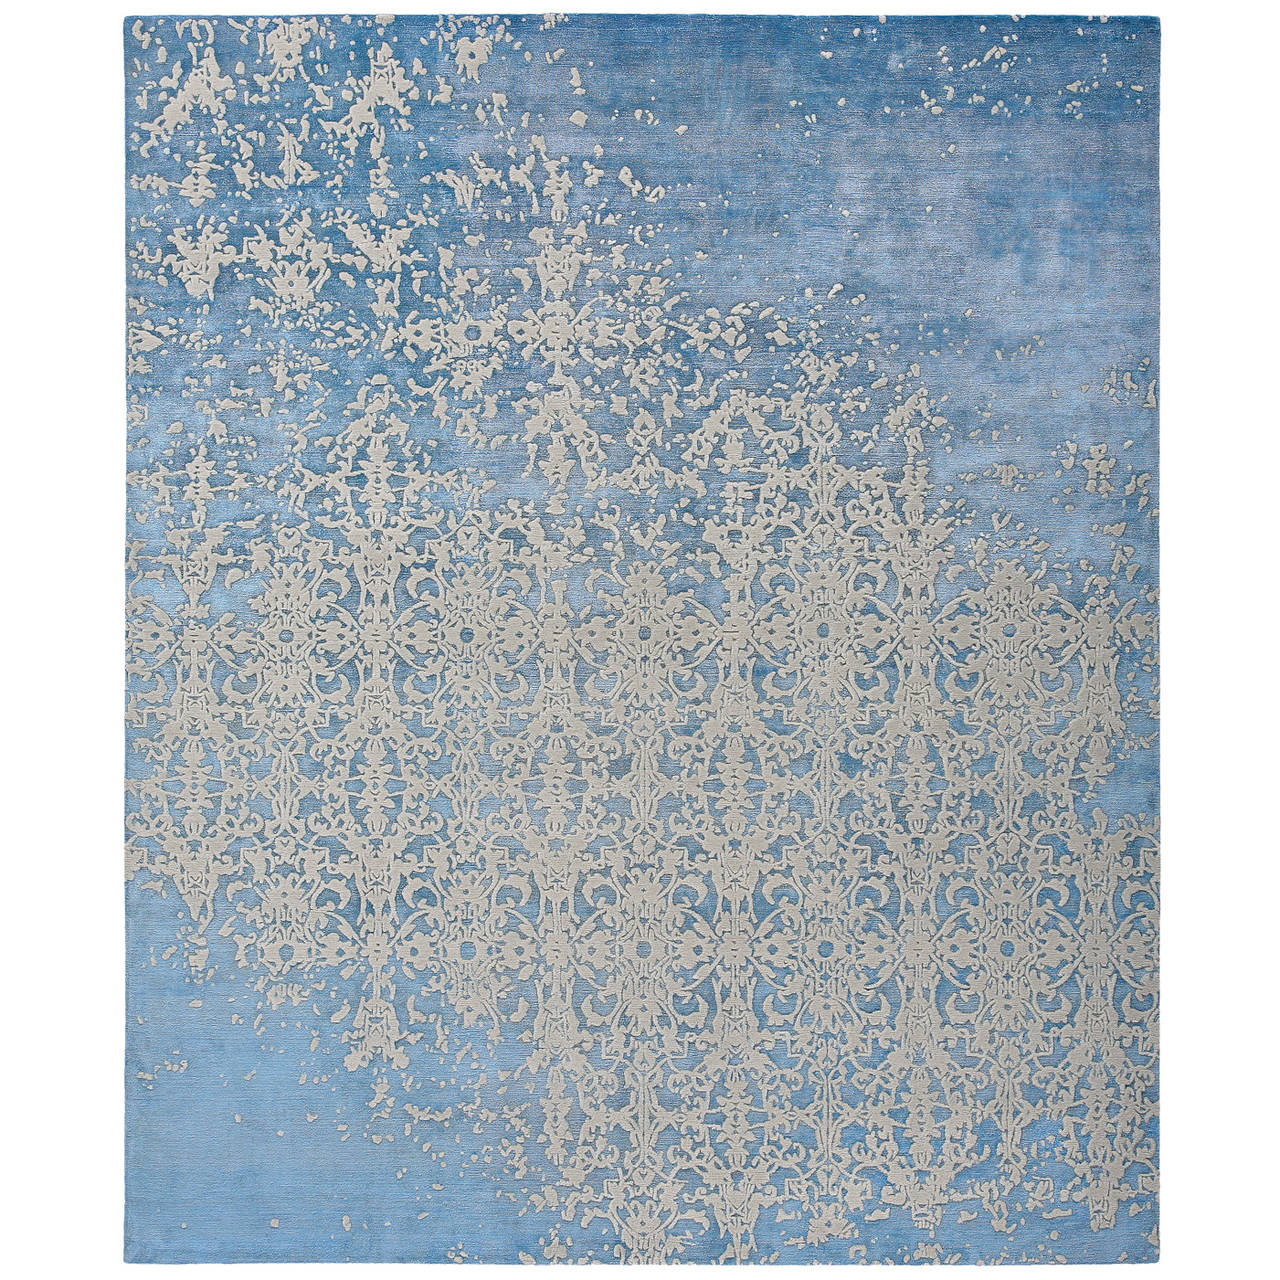 Milano Raved from the Erased Classics Carpet Collection by Jan Kath For Sale